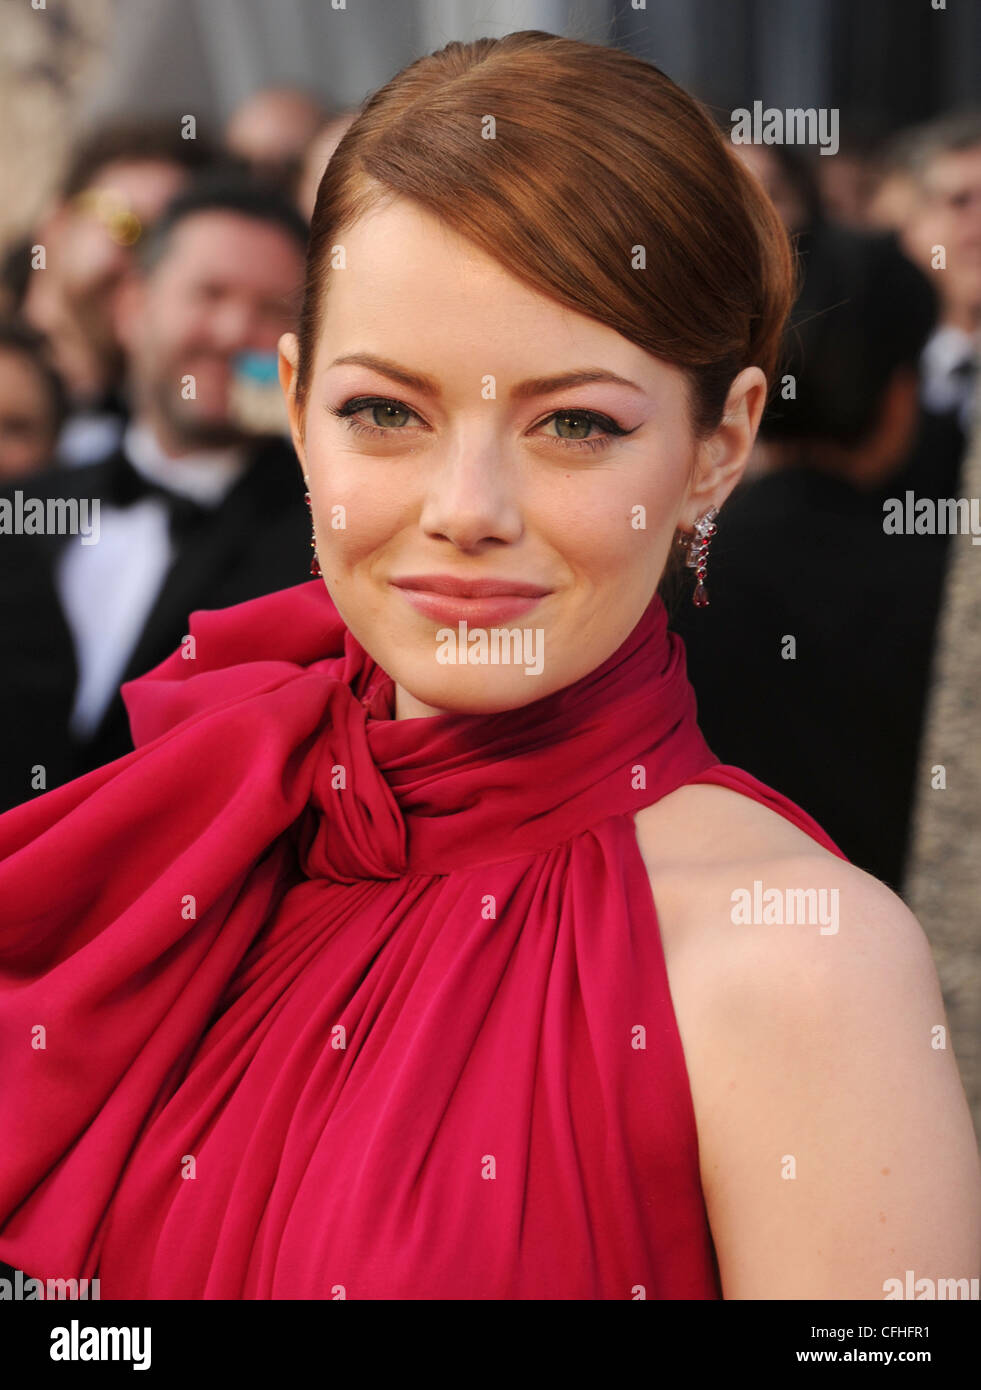 EMMA STONE actrice US en février 2012. Photo Jeffrey Mayer Photo Stock